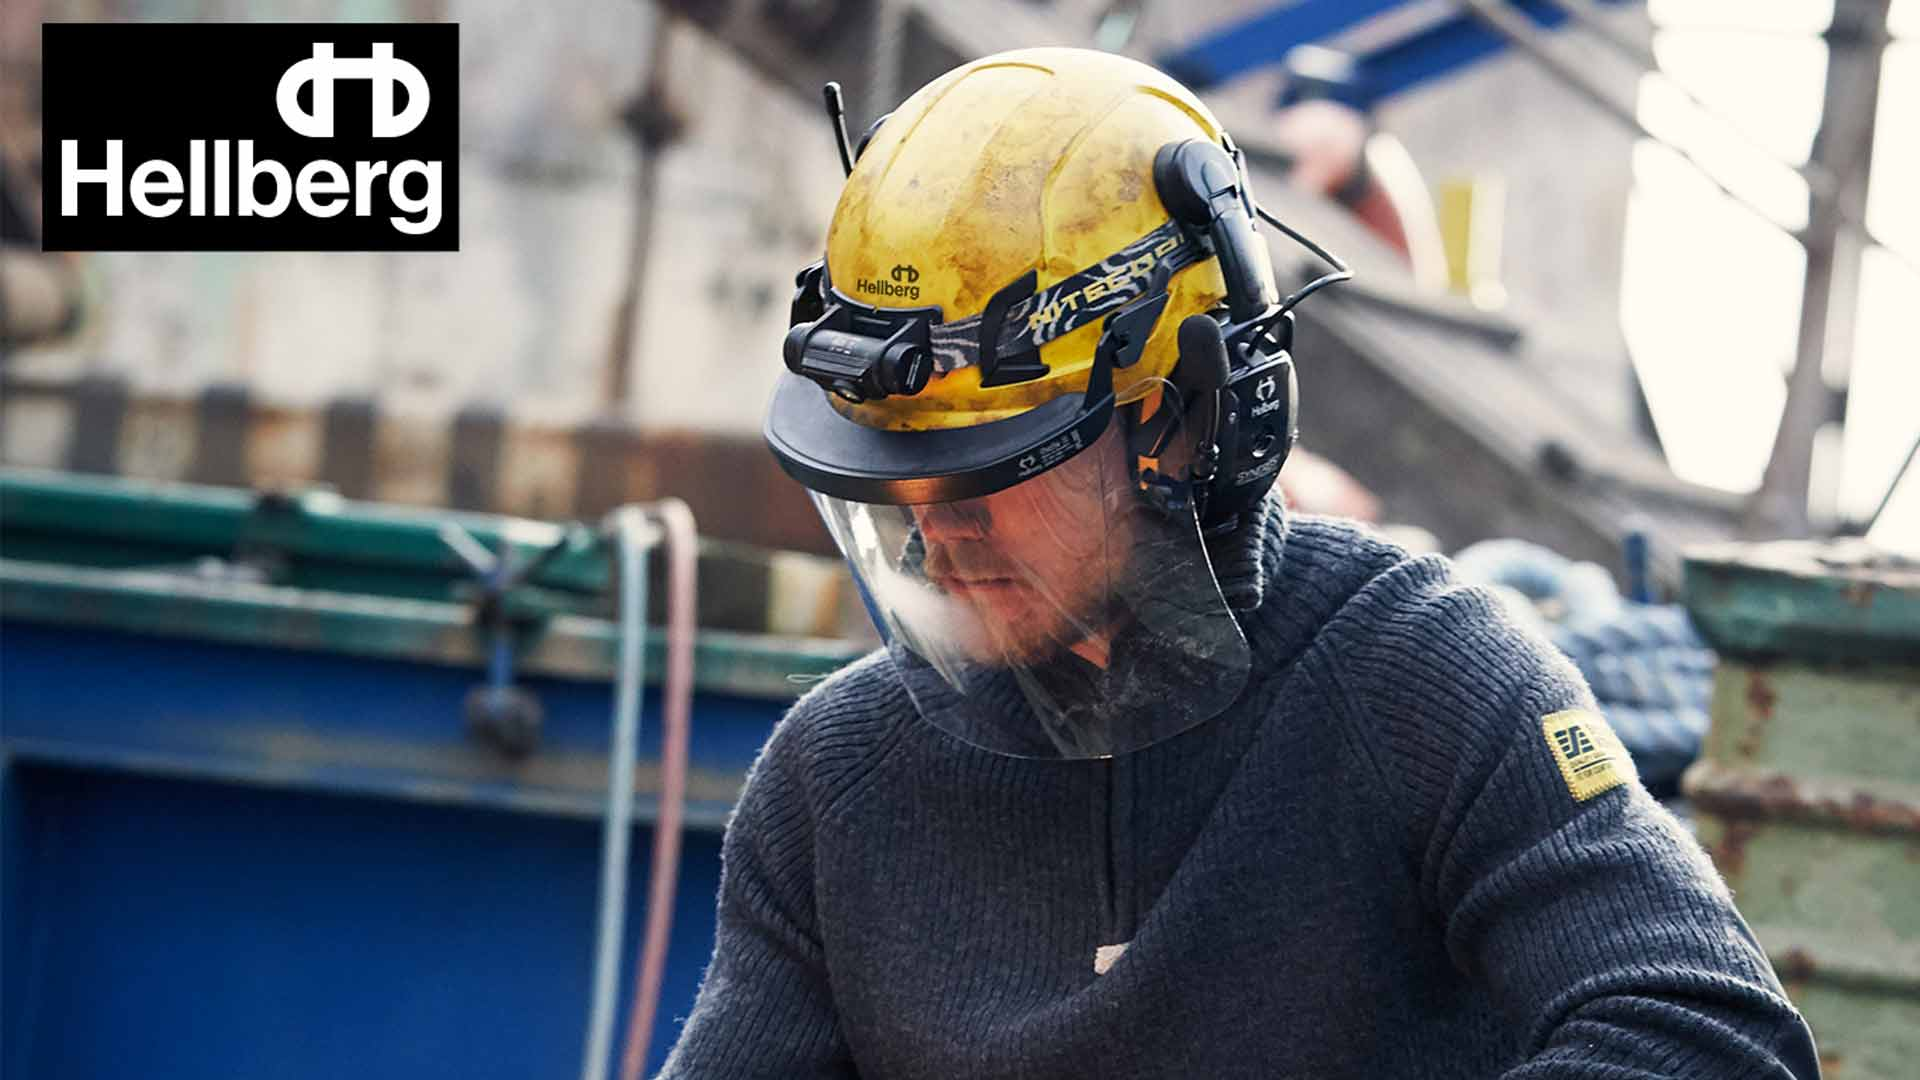 Top quality face protection from Hellberg Safety